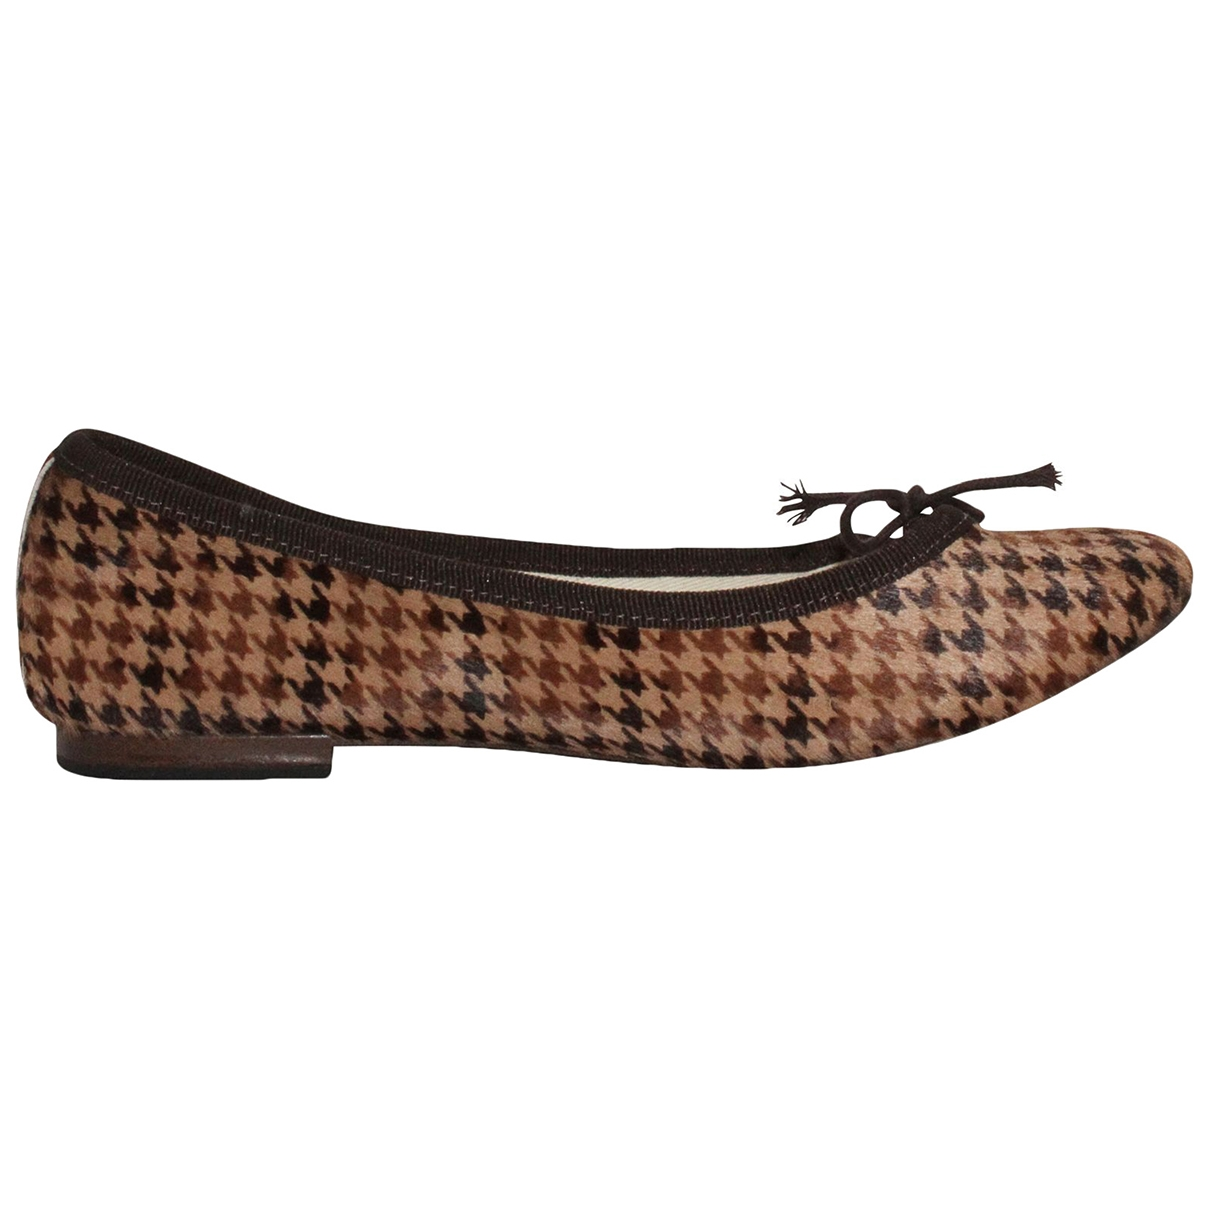 Repetto \N Brown Pony-style calfskin Ballet flats for Women 36 EU